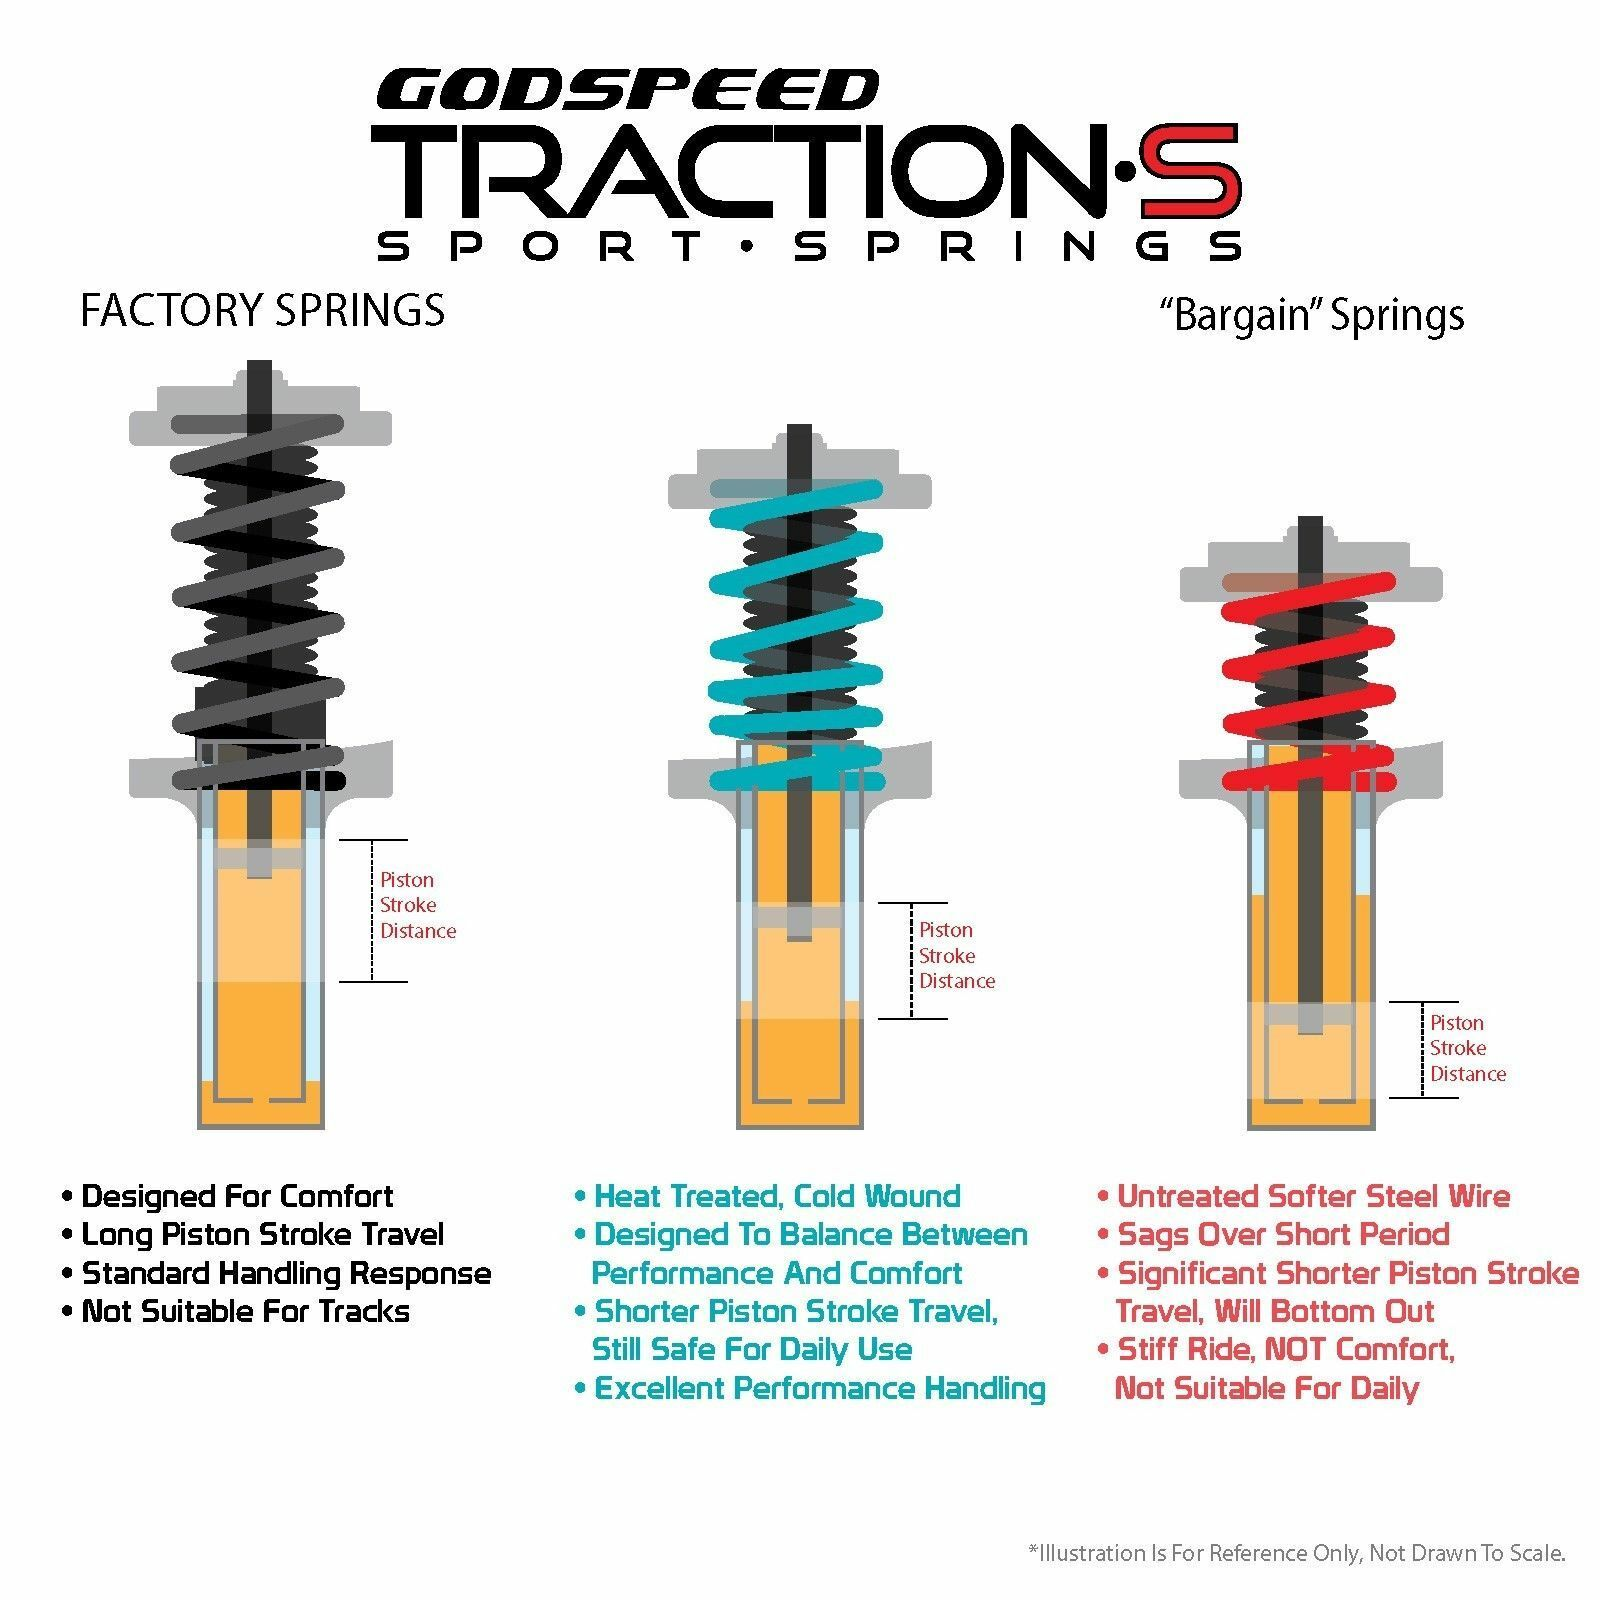 Compatible With//Replacement For Brightt GSP-WIA-583 Traction-S Performance Lowering Springs fits A3 2006-2013 Set of 4 8P